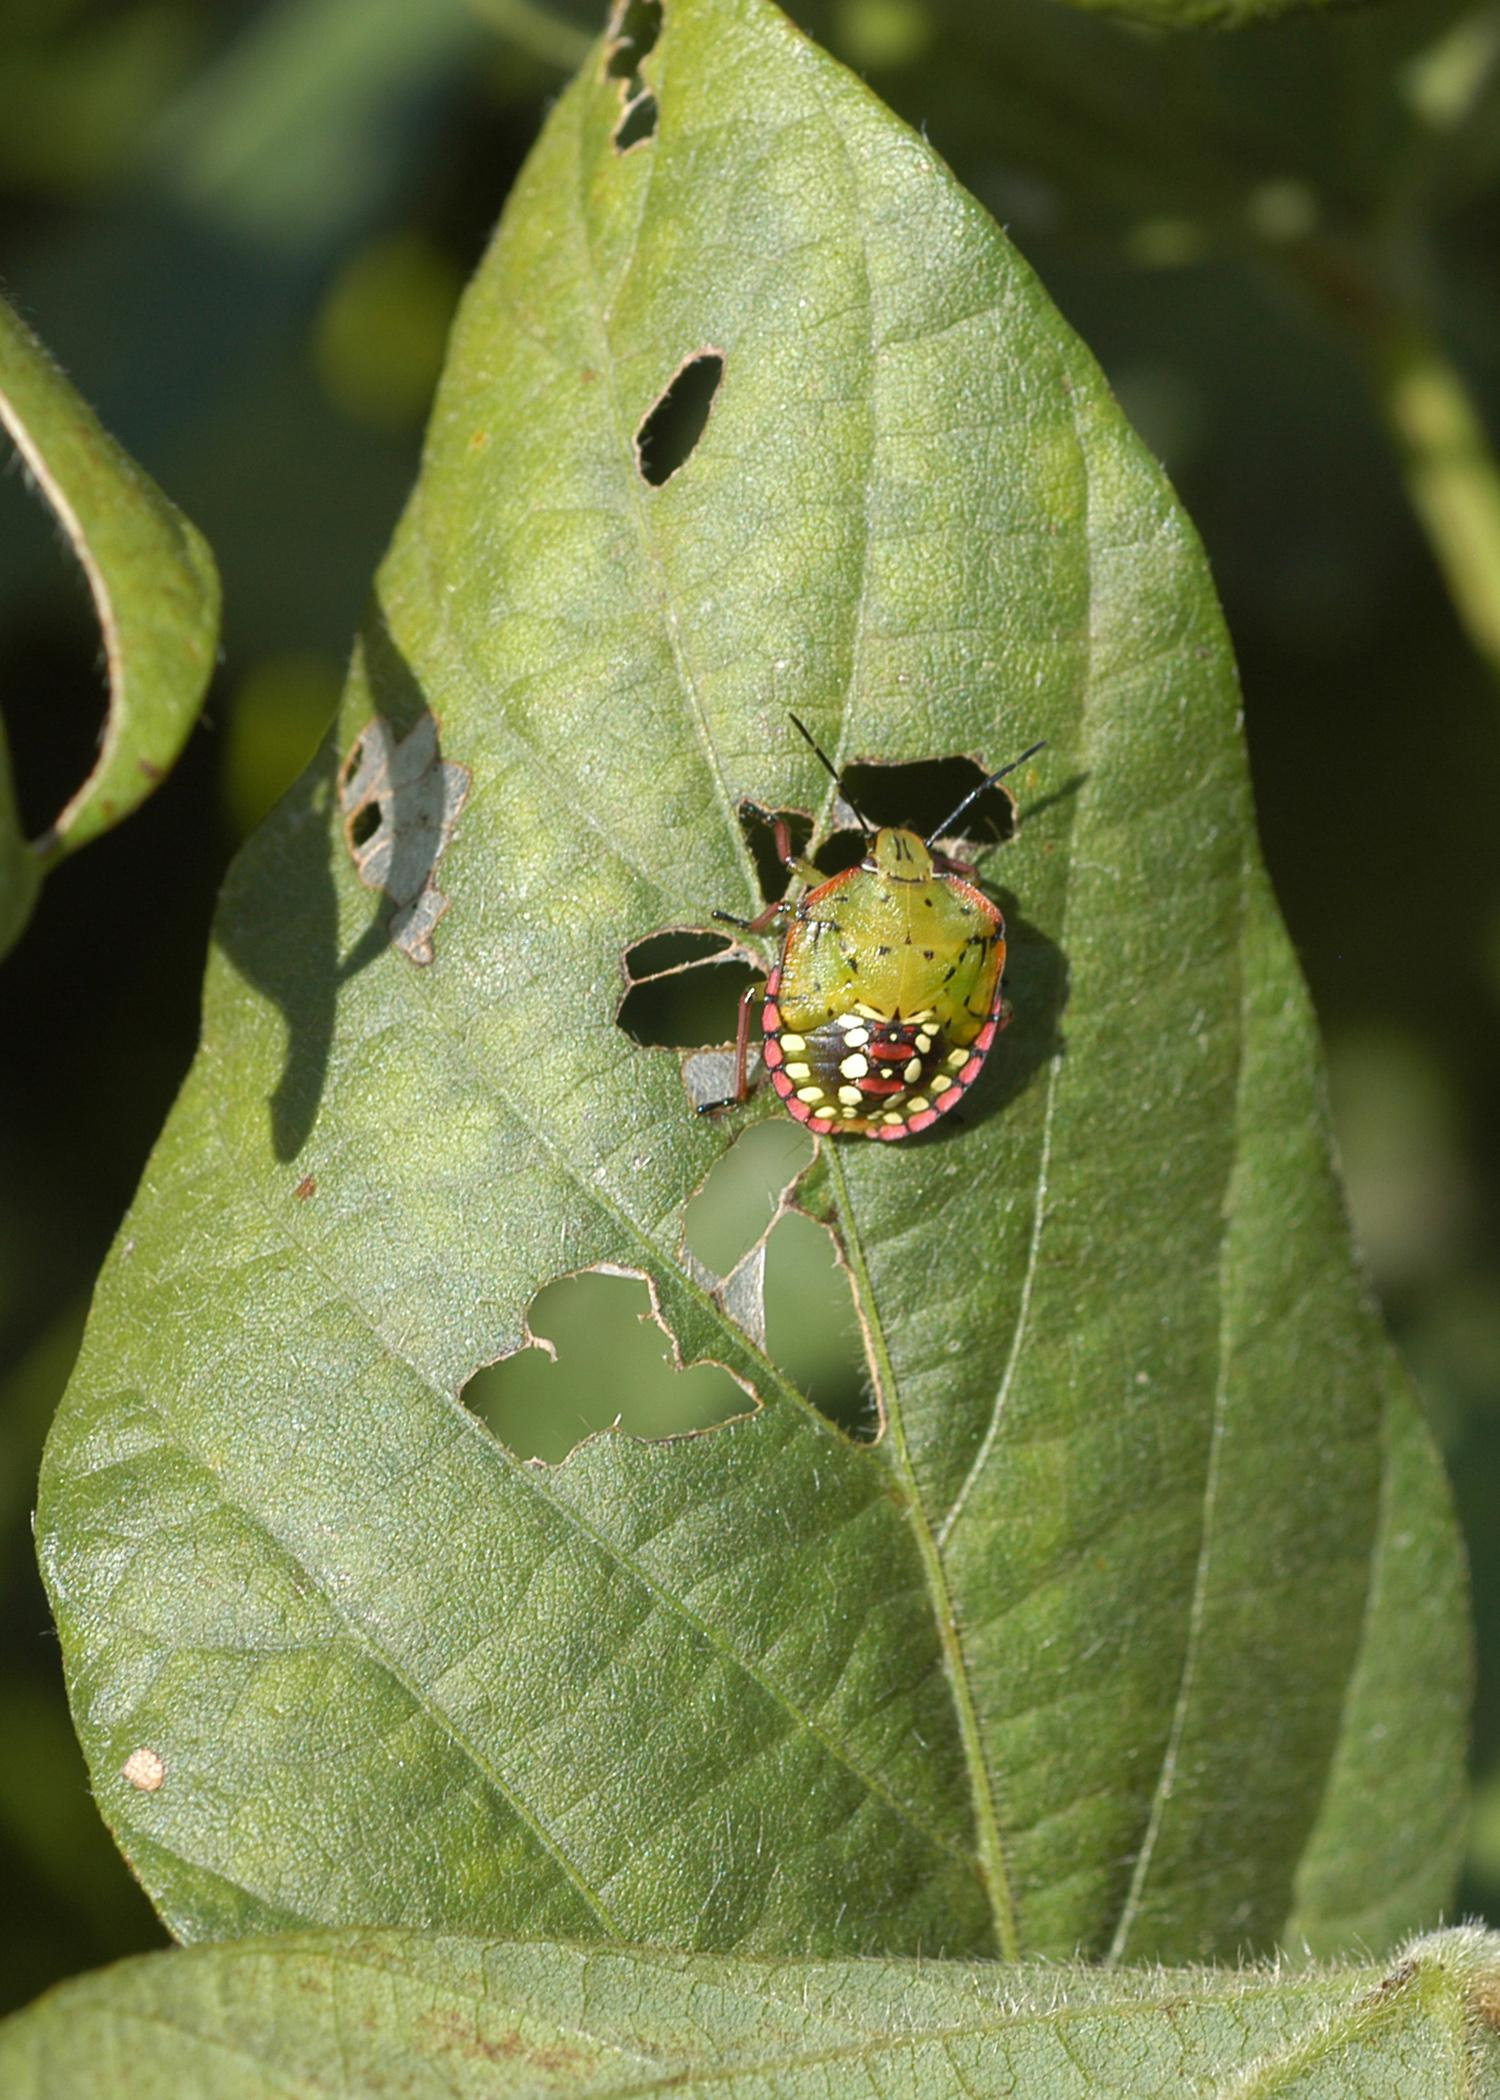 Mississippi State University recently changed its recommendations on when to treat for stinkbugs in soybeans. This Southern green stinkbug is in its nymph phase. (Photo by MSU Extension Service)